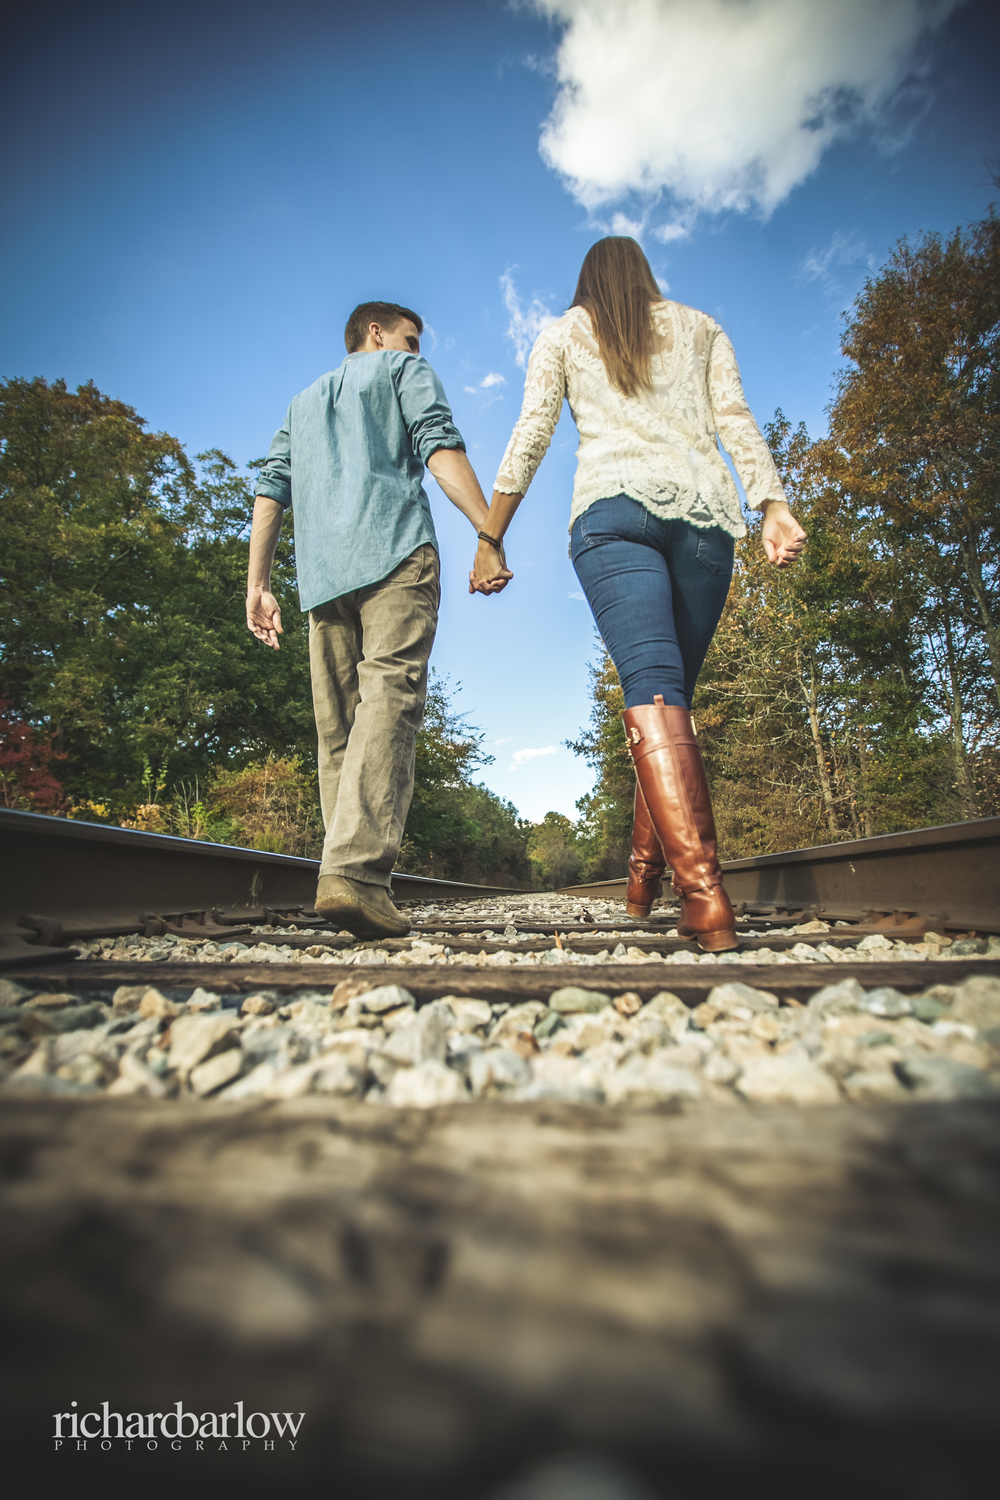 richard barlow photography - Graham and Lauren Engagement Session Wake Forest-22.jpg